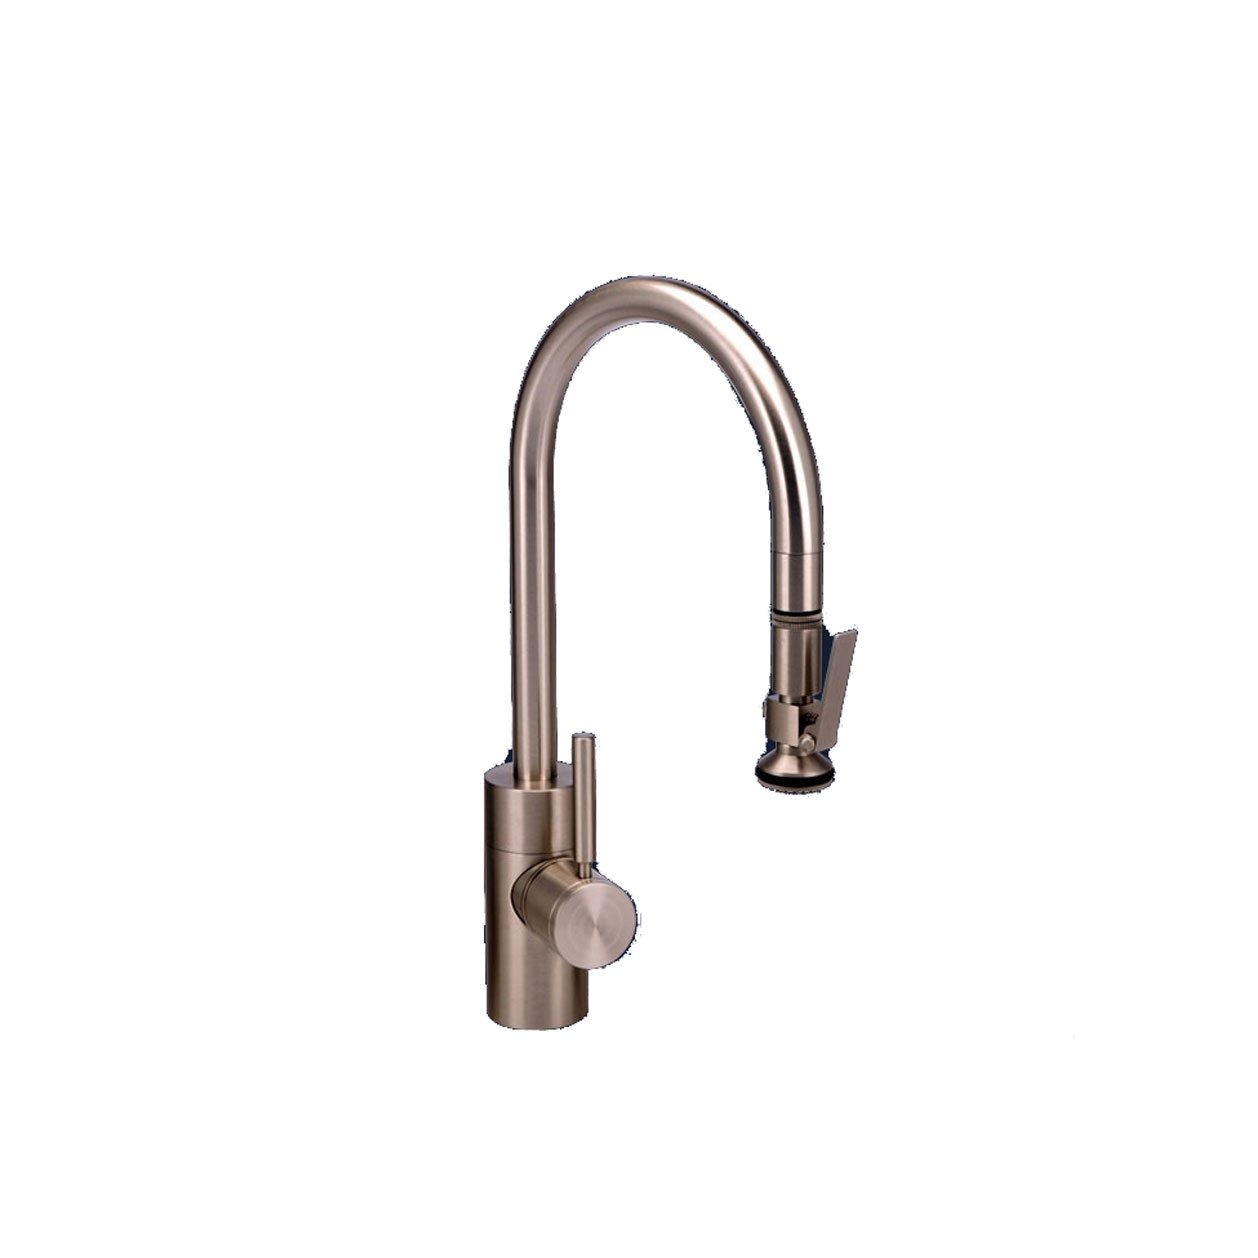 White Waterstone 5800-WT Standard Reach PLP Pull Down Faucet